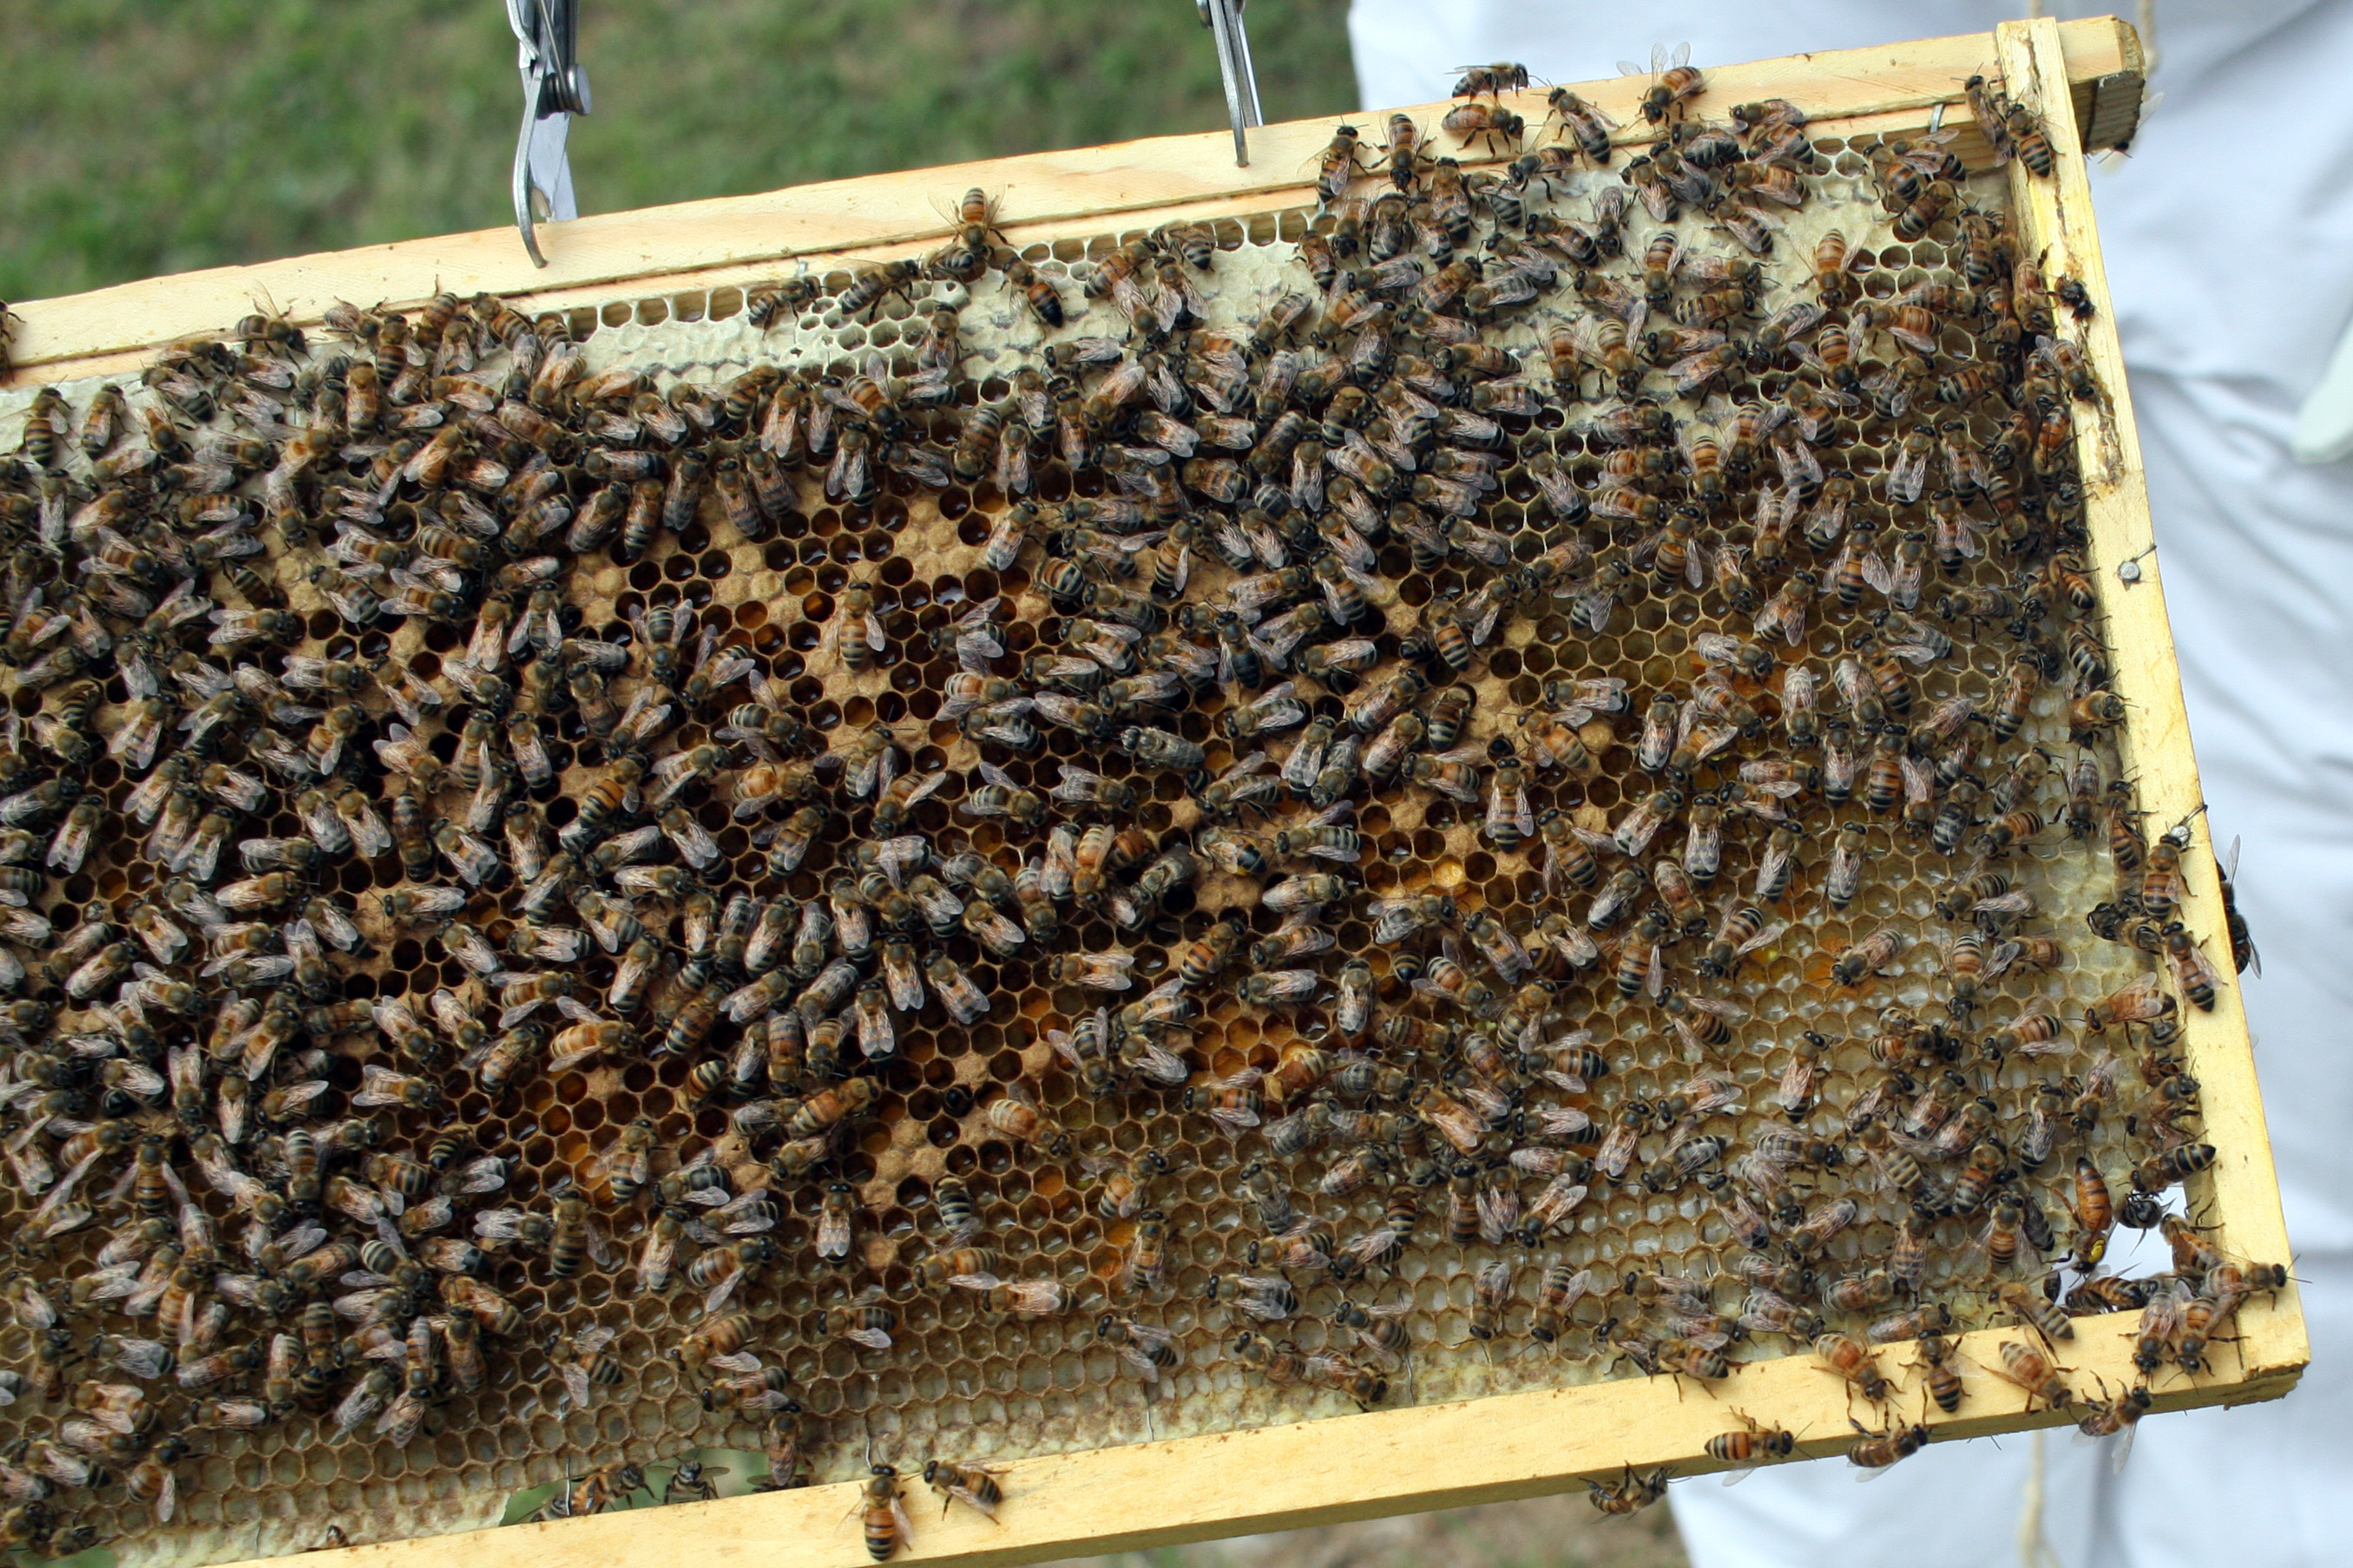 We have bees!